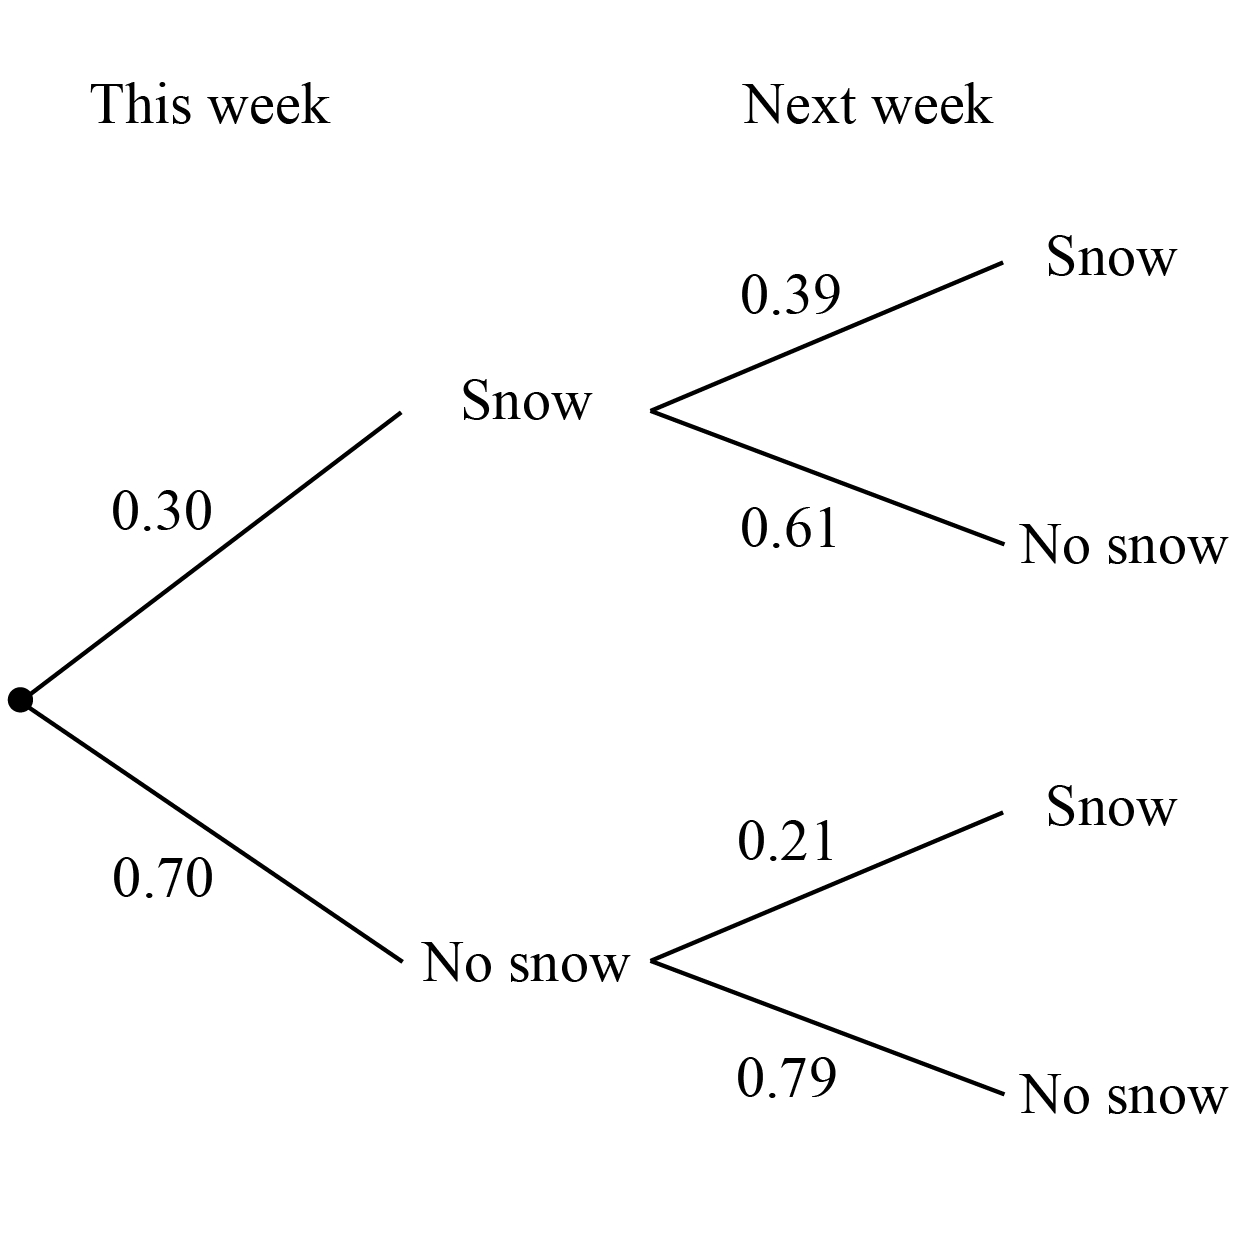 hight resolution of this week next week snow 0 39 snow 0 30 0 61 no snow snow 0 21 0 70 no